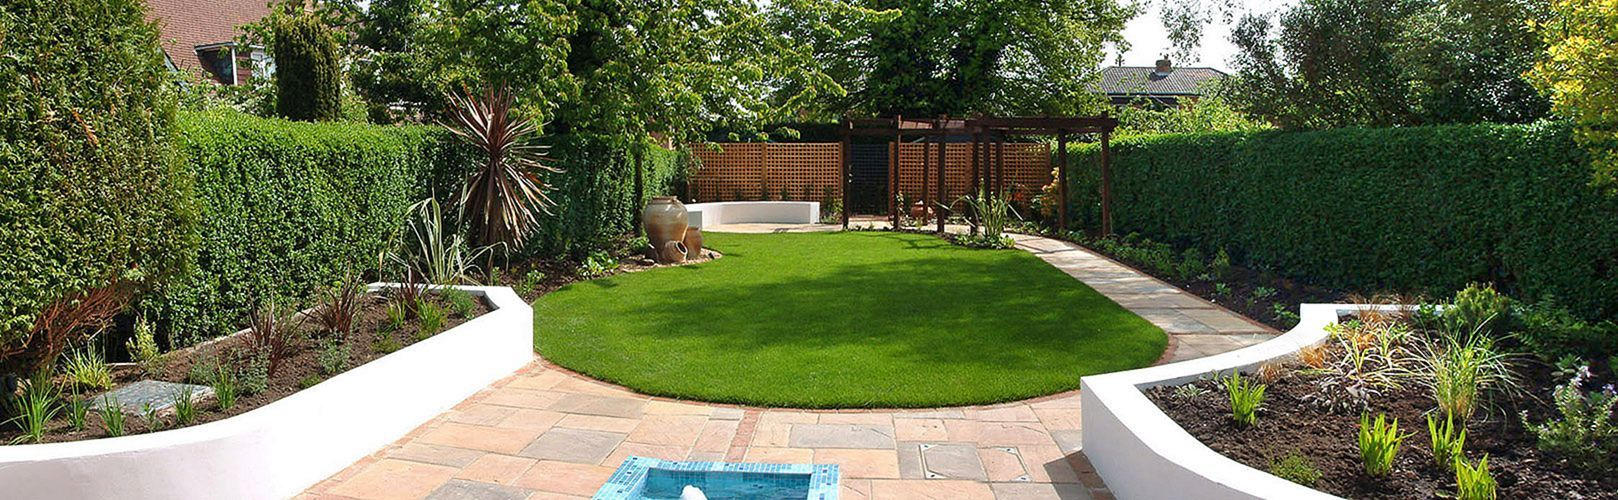 43+ Beautiful Garden Design Ideas For Excellent Yard On A ...